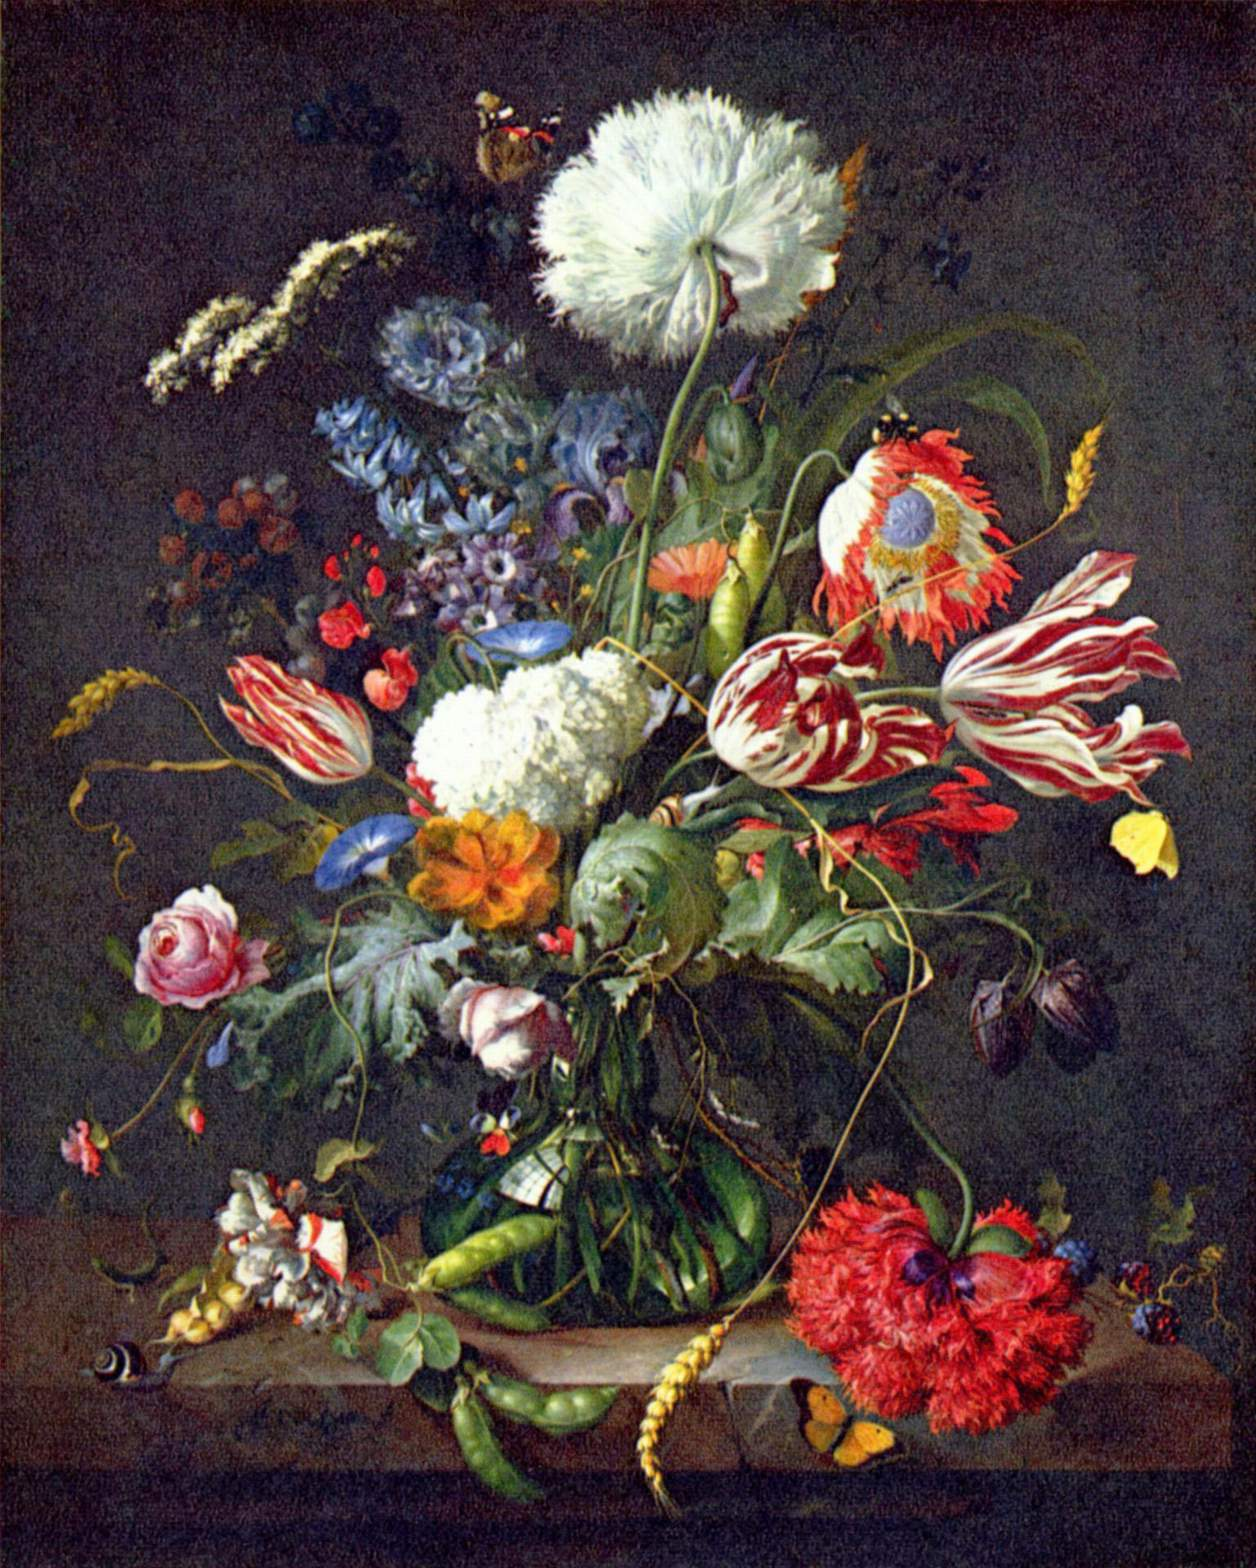 Jan David de Heem, 1645, Nat.Gal. Washington